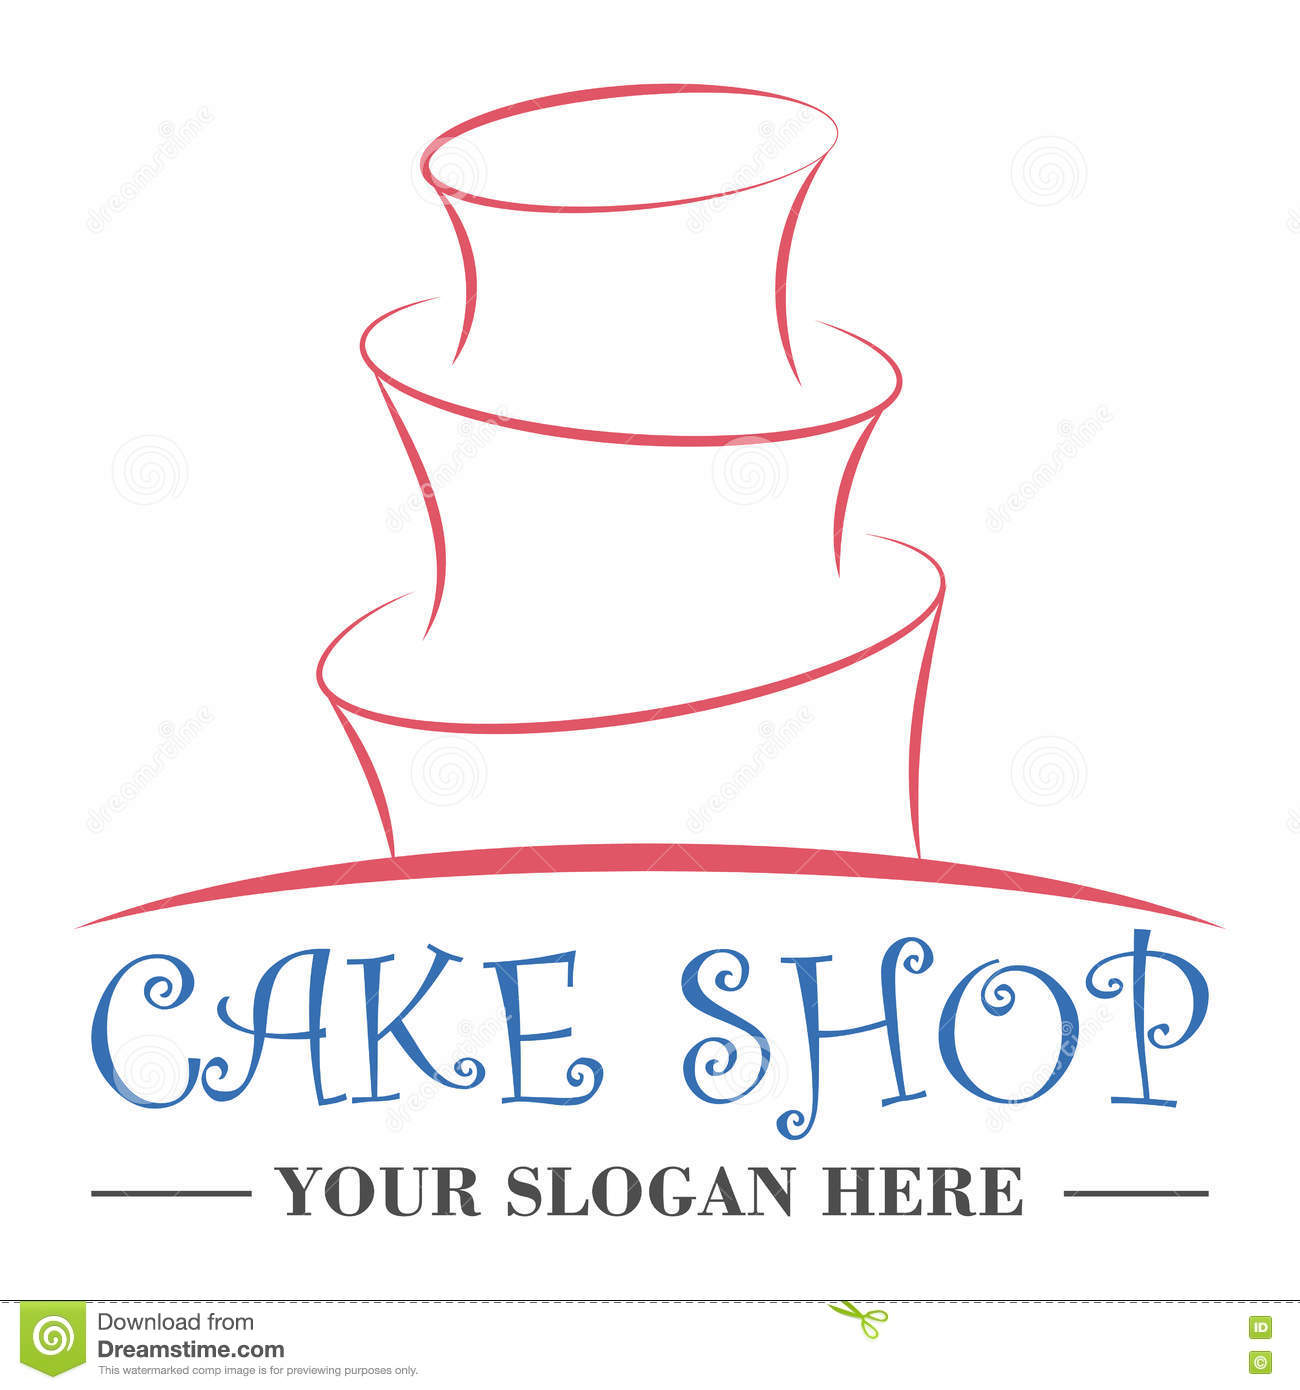 Cake Shop Logo Design Template Stock Vector - Illustration of ... for Logo Design Samples Free Download  181pct